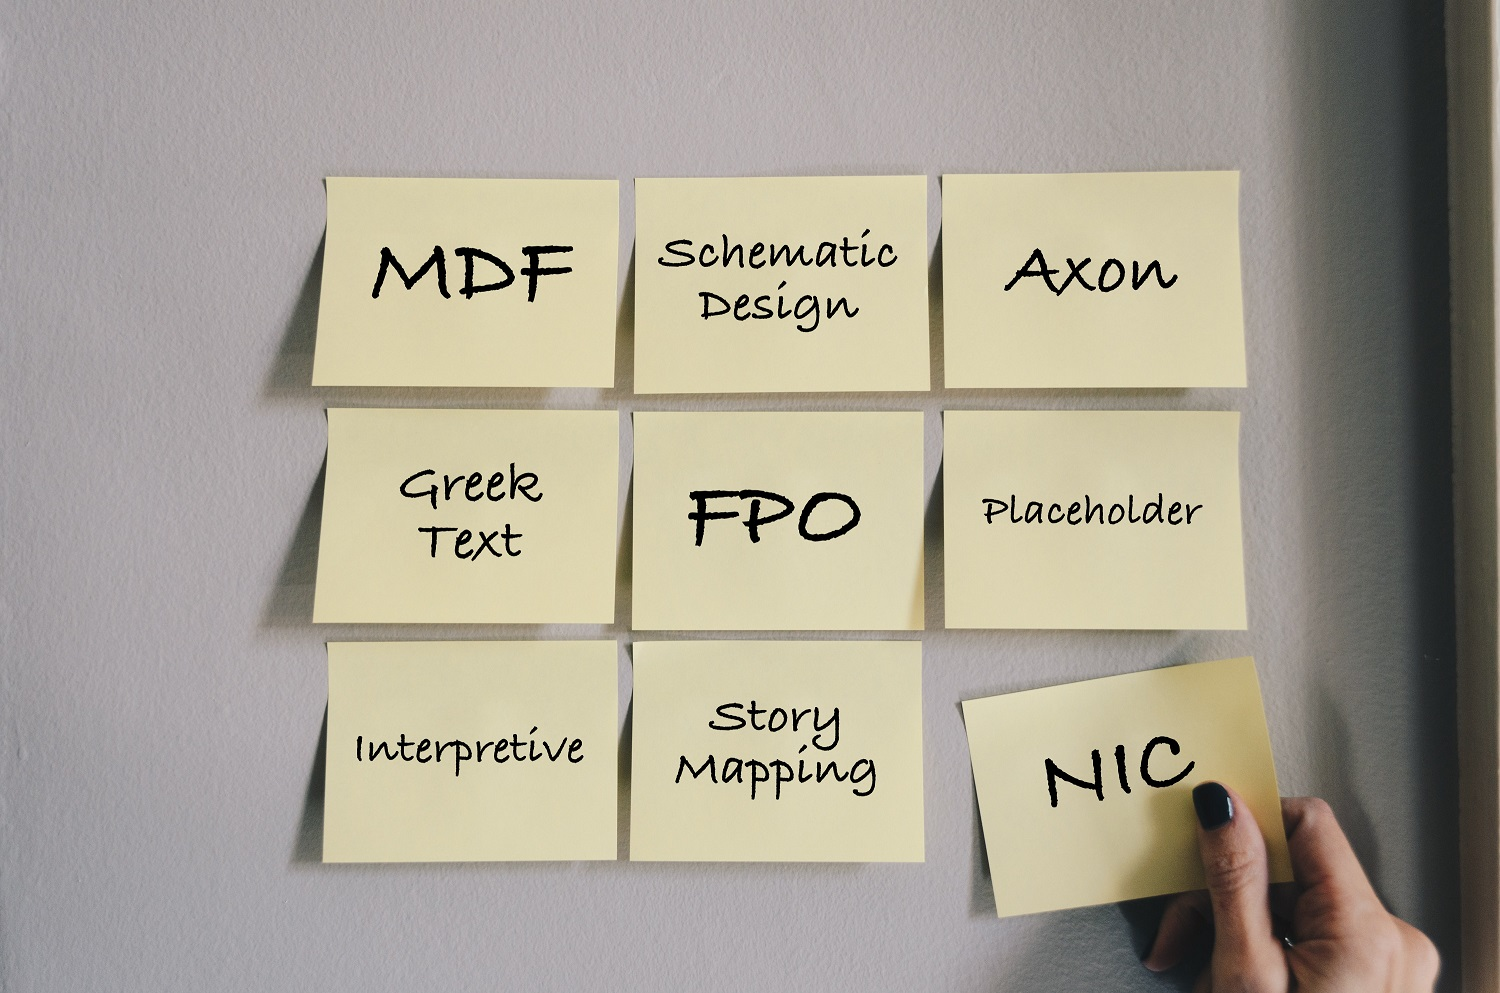 Image of 12 Post-It notes on a wall with various acronyms or design words. Top row: MDF, Schematic Design, Axon. Second row: Greek Text, FPO, Placeholder. Third row: Interpretive, Story Mapping, NIC. The final note is being held by a woman's hand wearing dark nail polish.